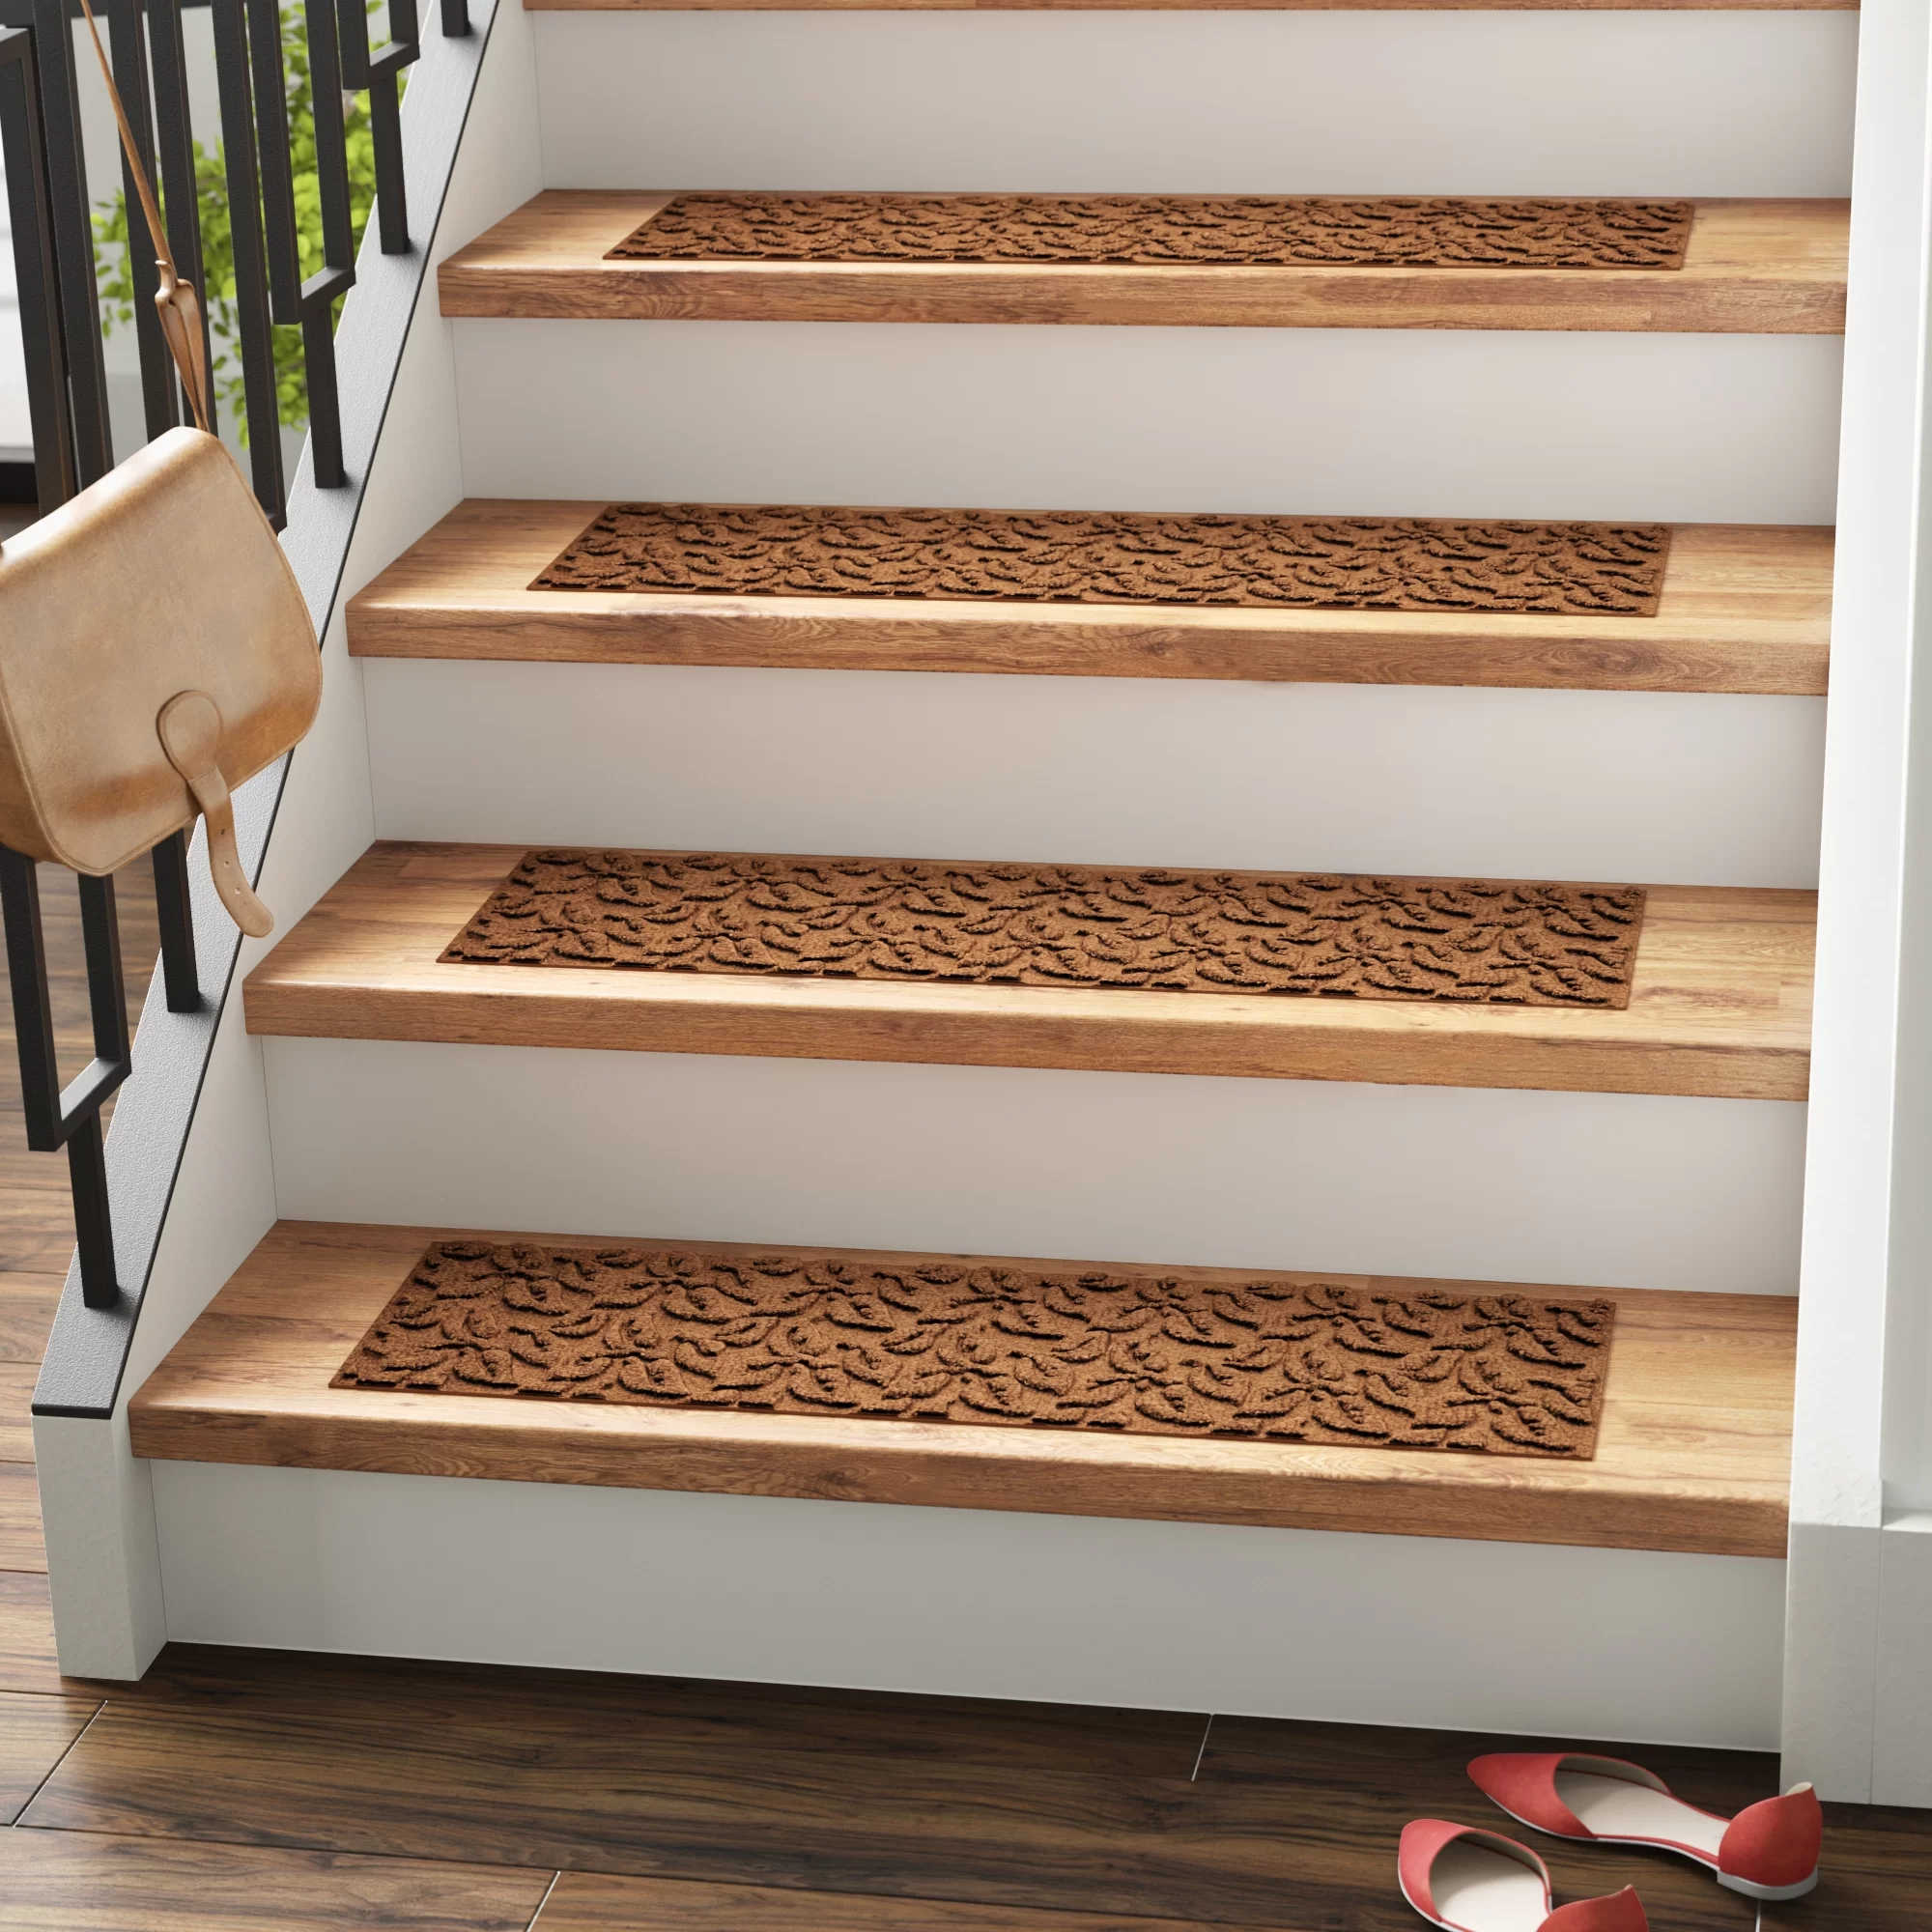 Tucker Murphy™ Pet Beauvais Dogwood Leaf Stair Tread Reviews | Dark Wood Stair Treads | Timber | White Handrail | Dark Stained | Natural Wood | Wood Finish